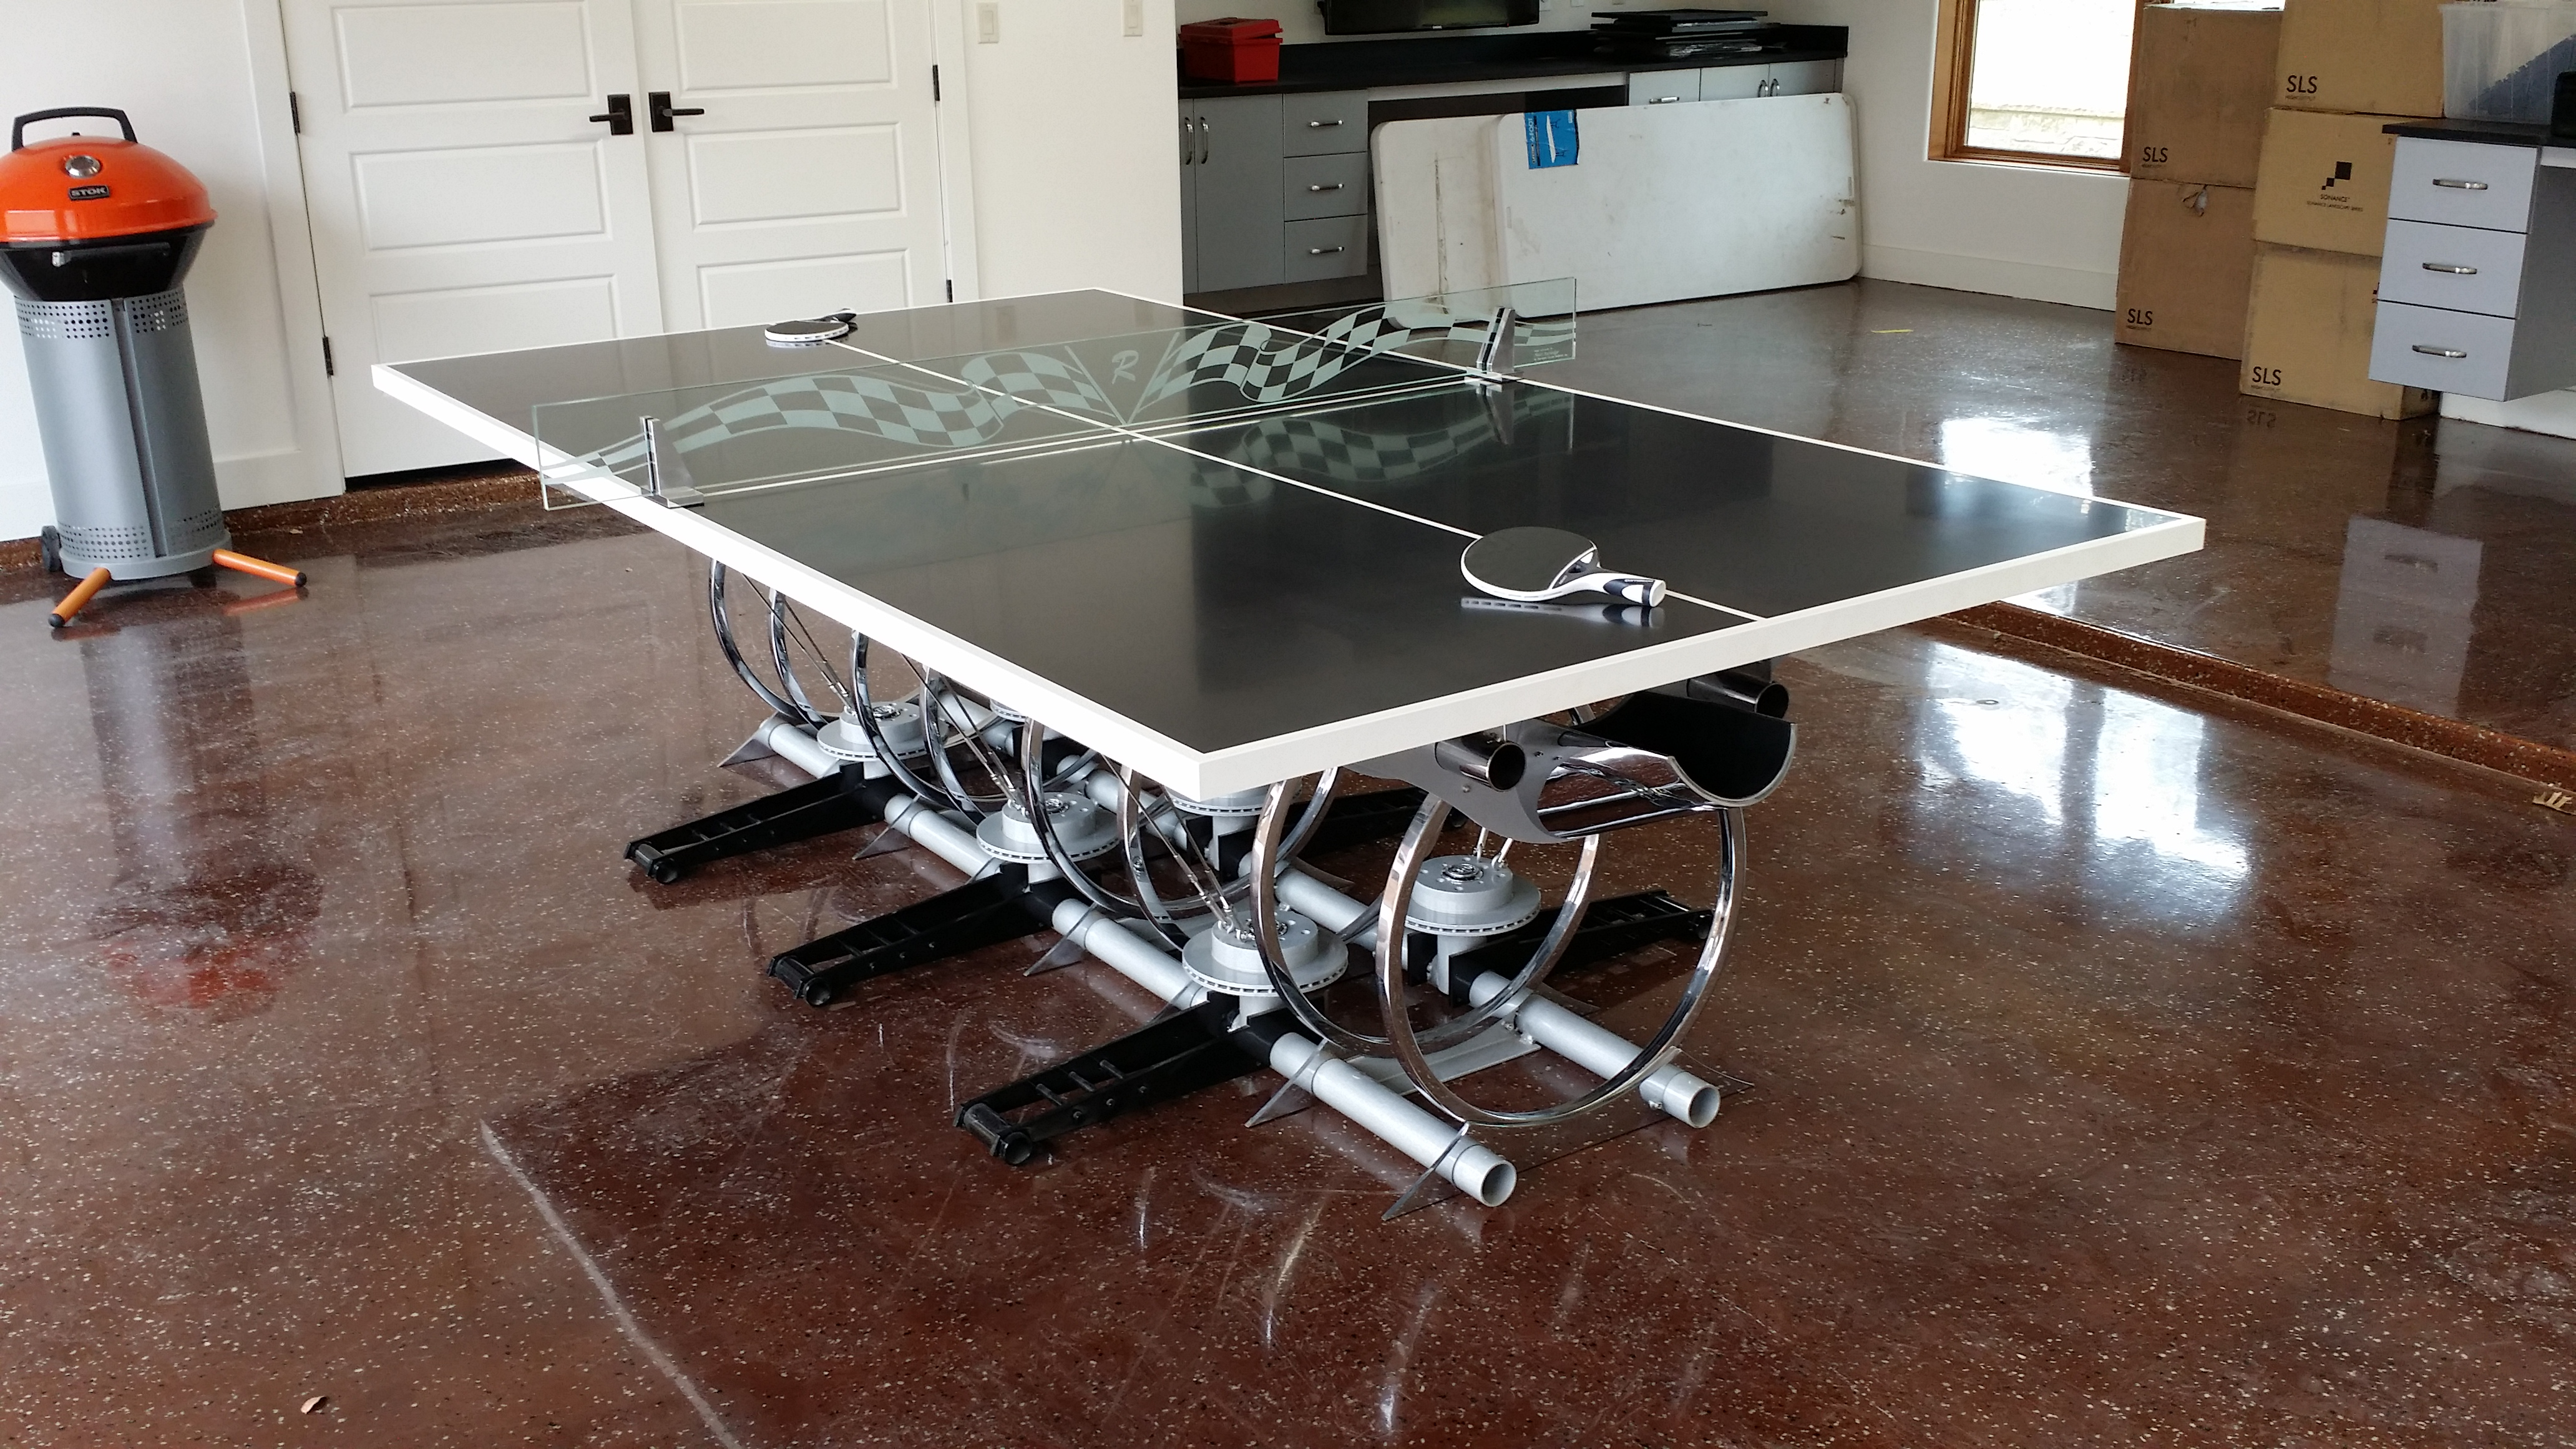 Automaniac Ping Pong Table #1!